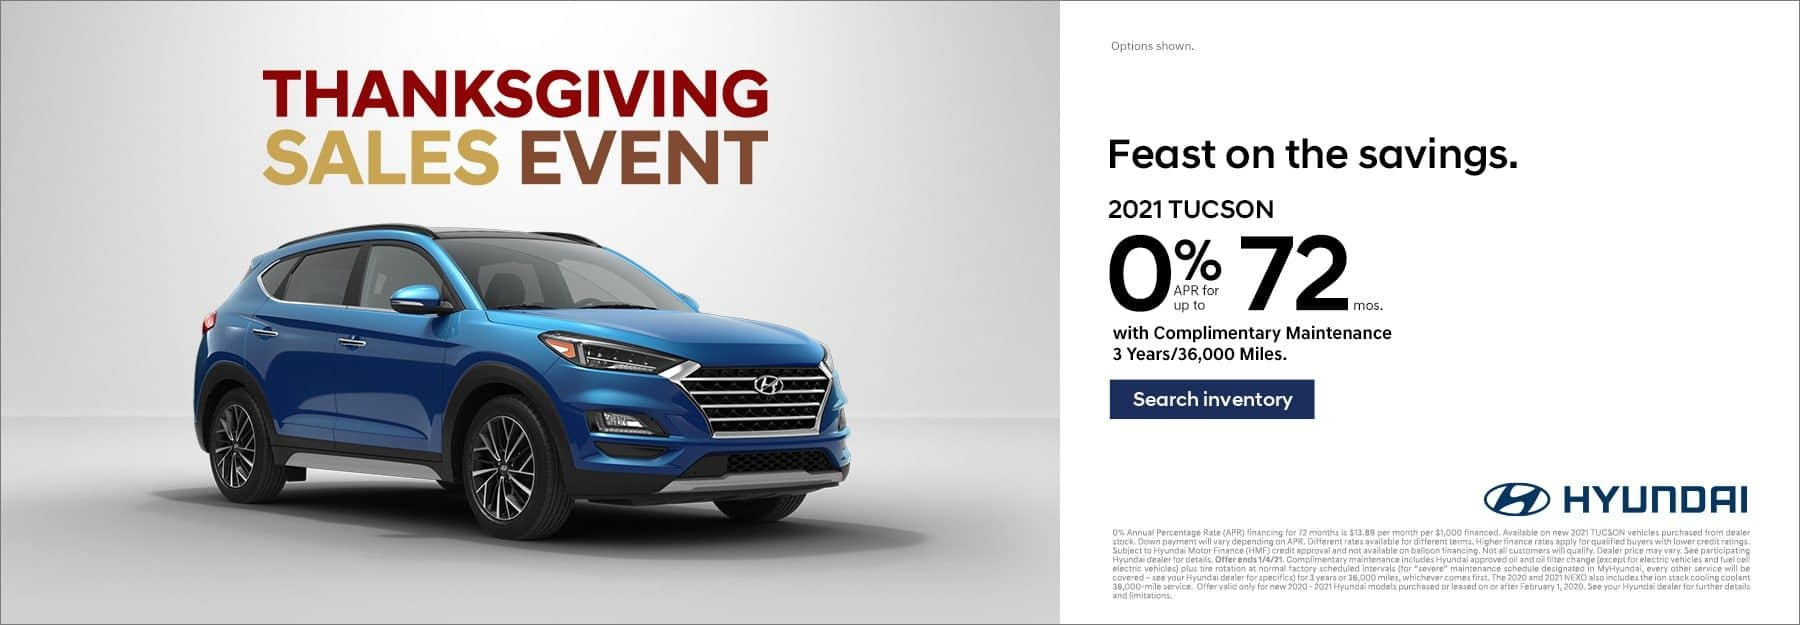 2021 Hyundai Tucson 0% for 72mo